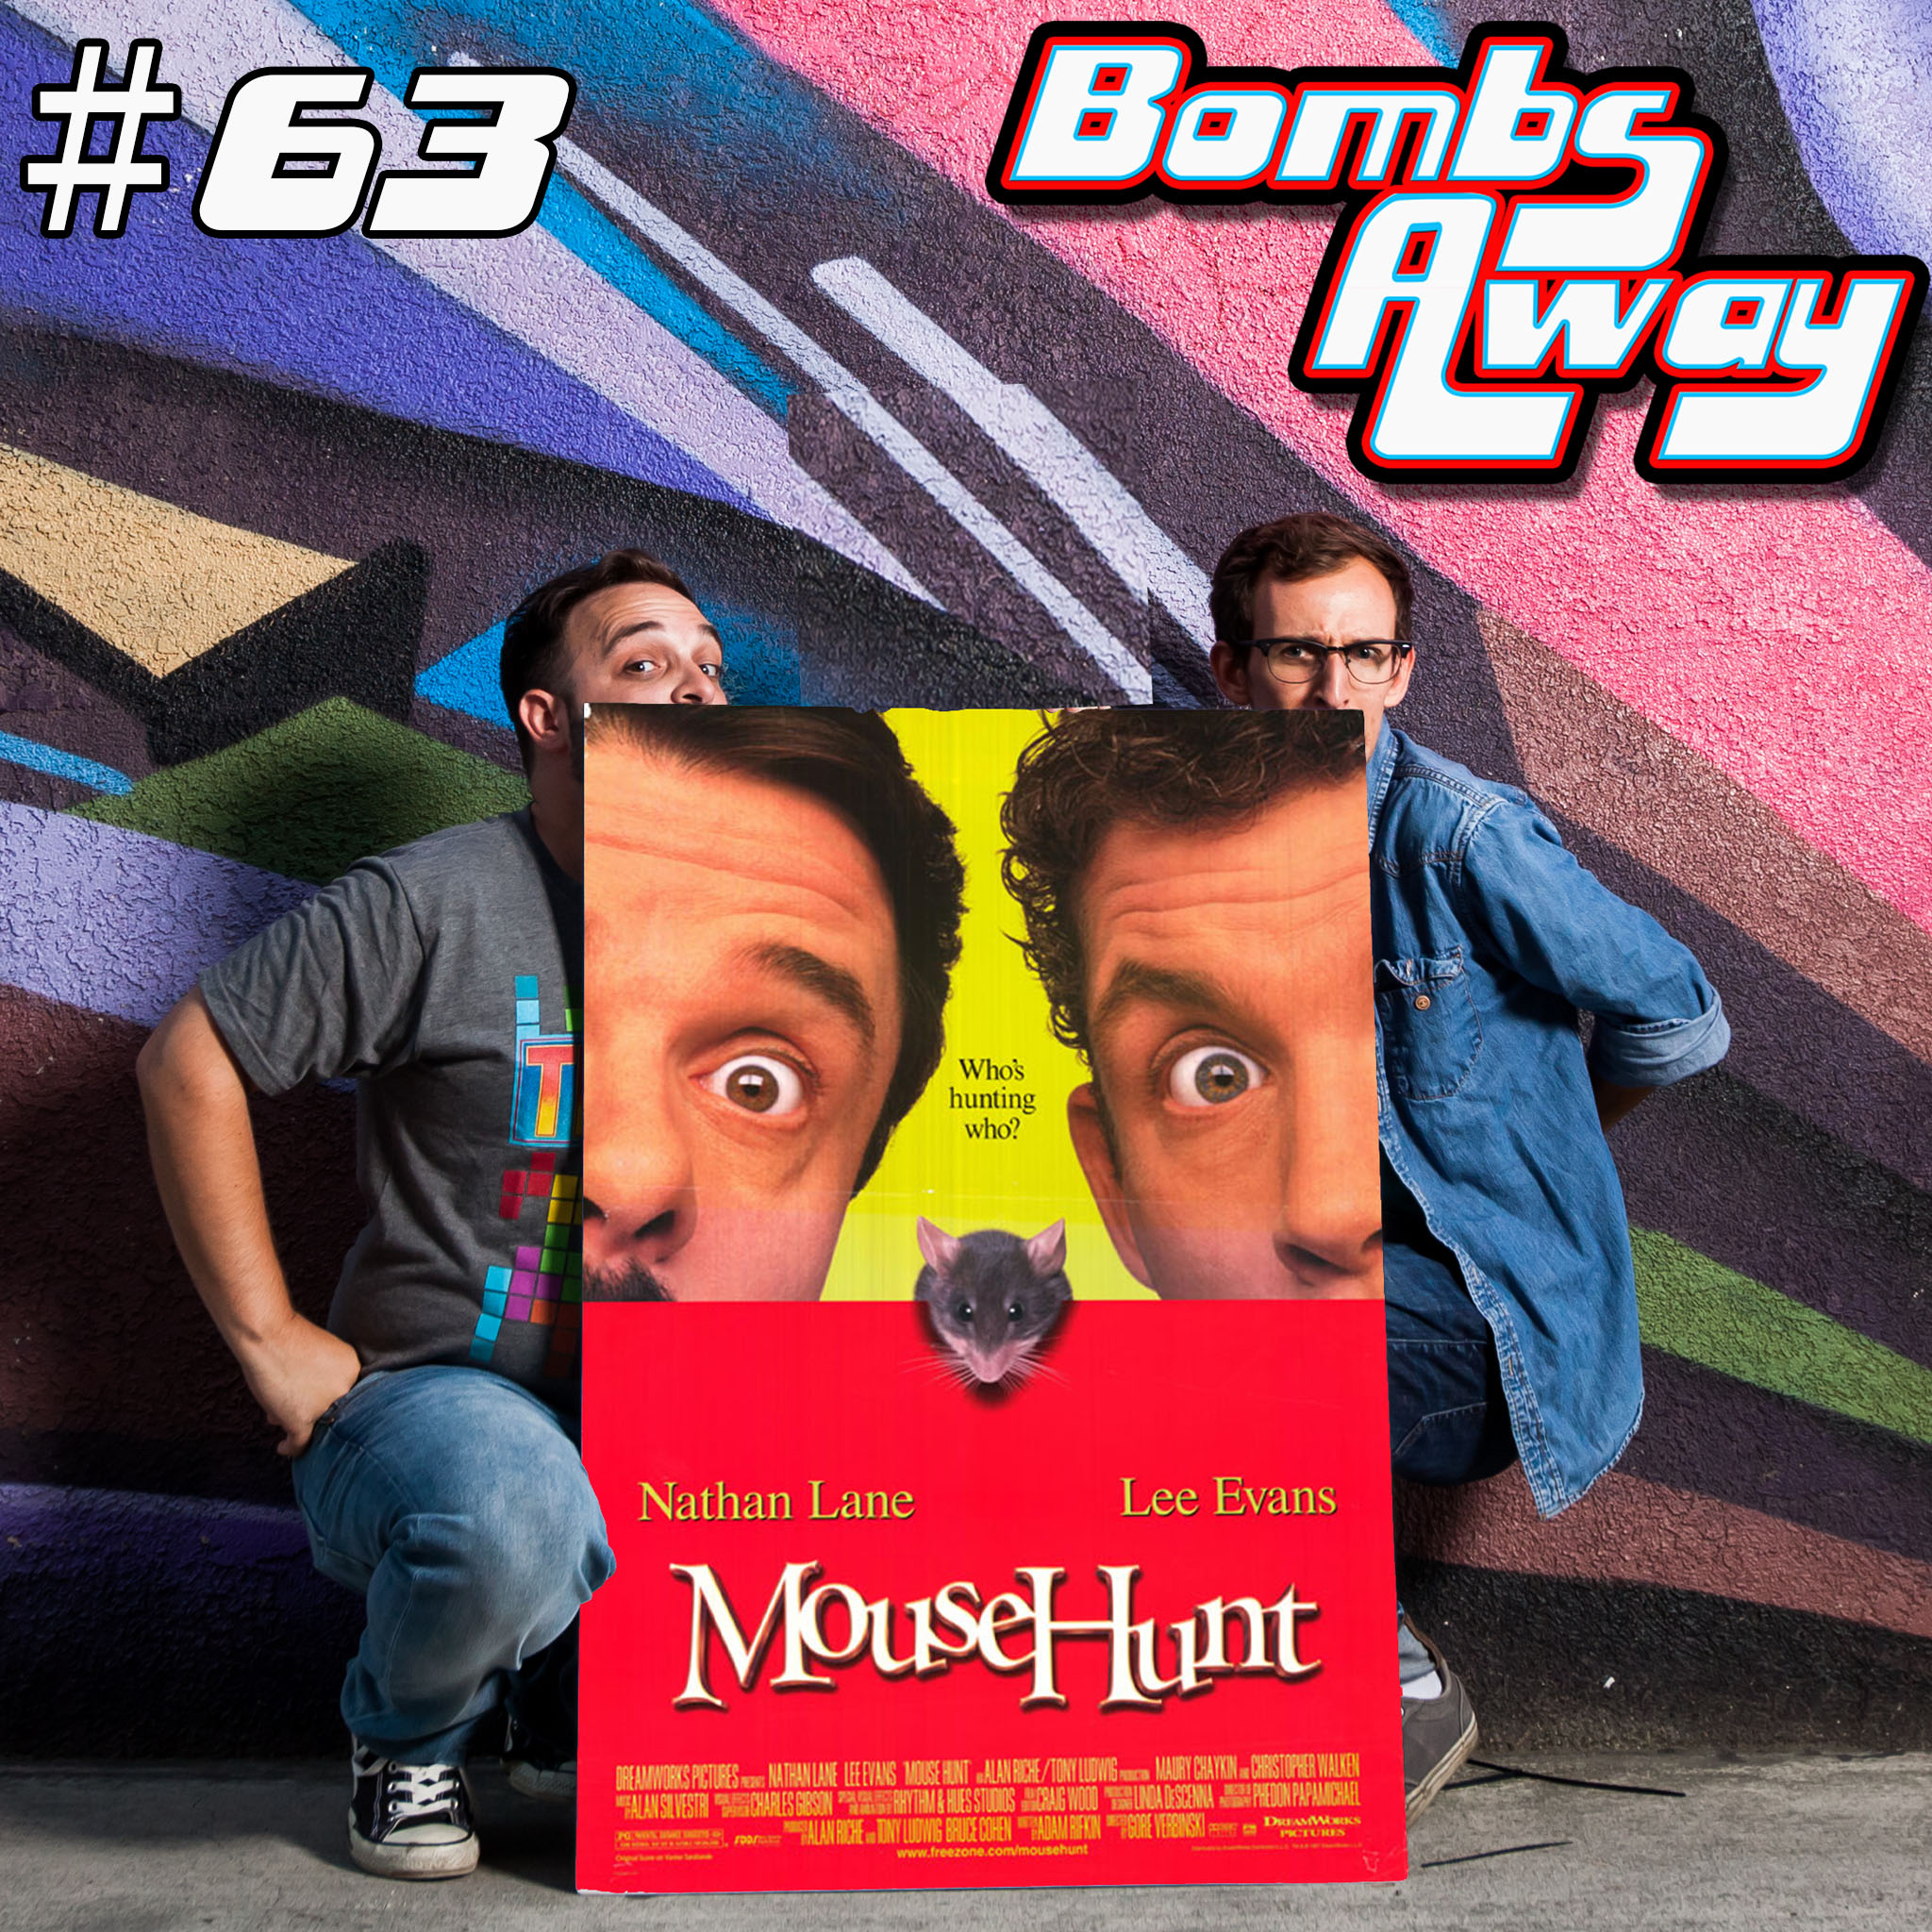 Episode 63 - Mousehunt (1997) [w/ Cheryl Jones of Movies Made Me]